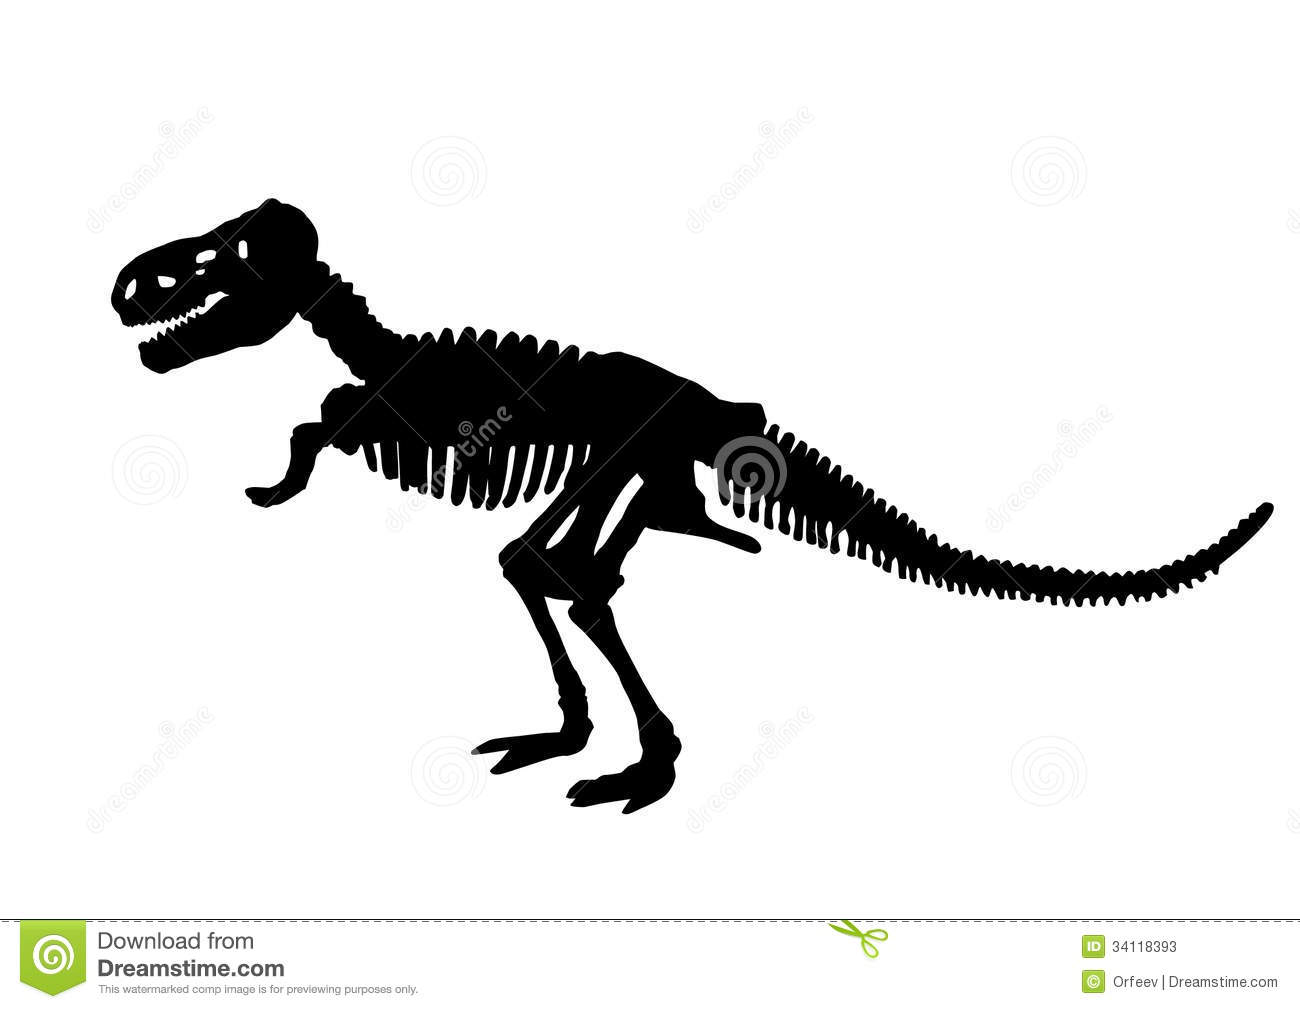 Dinosaur Skeleton Silhouette Stock Vector